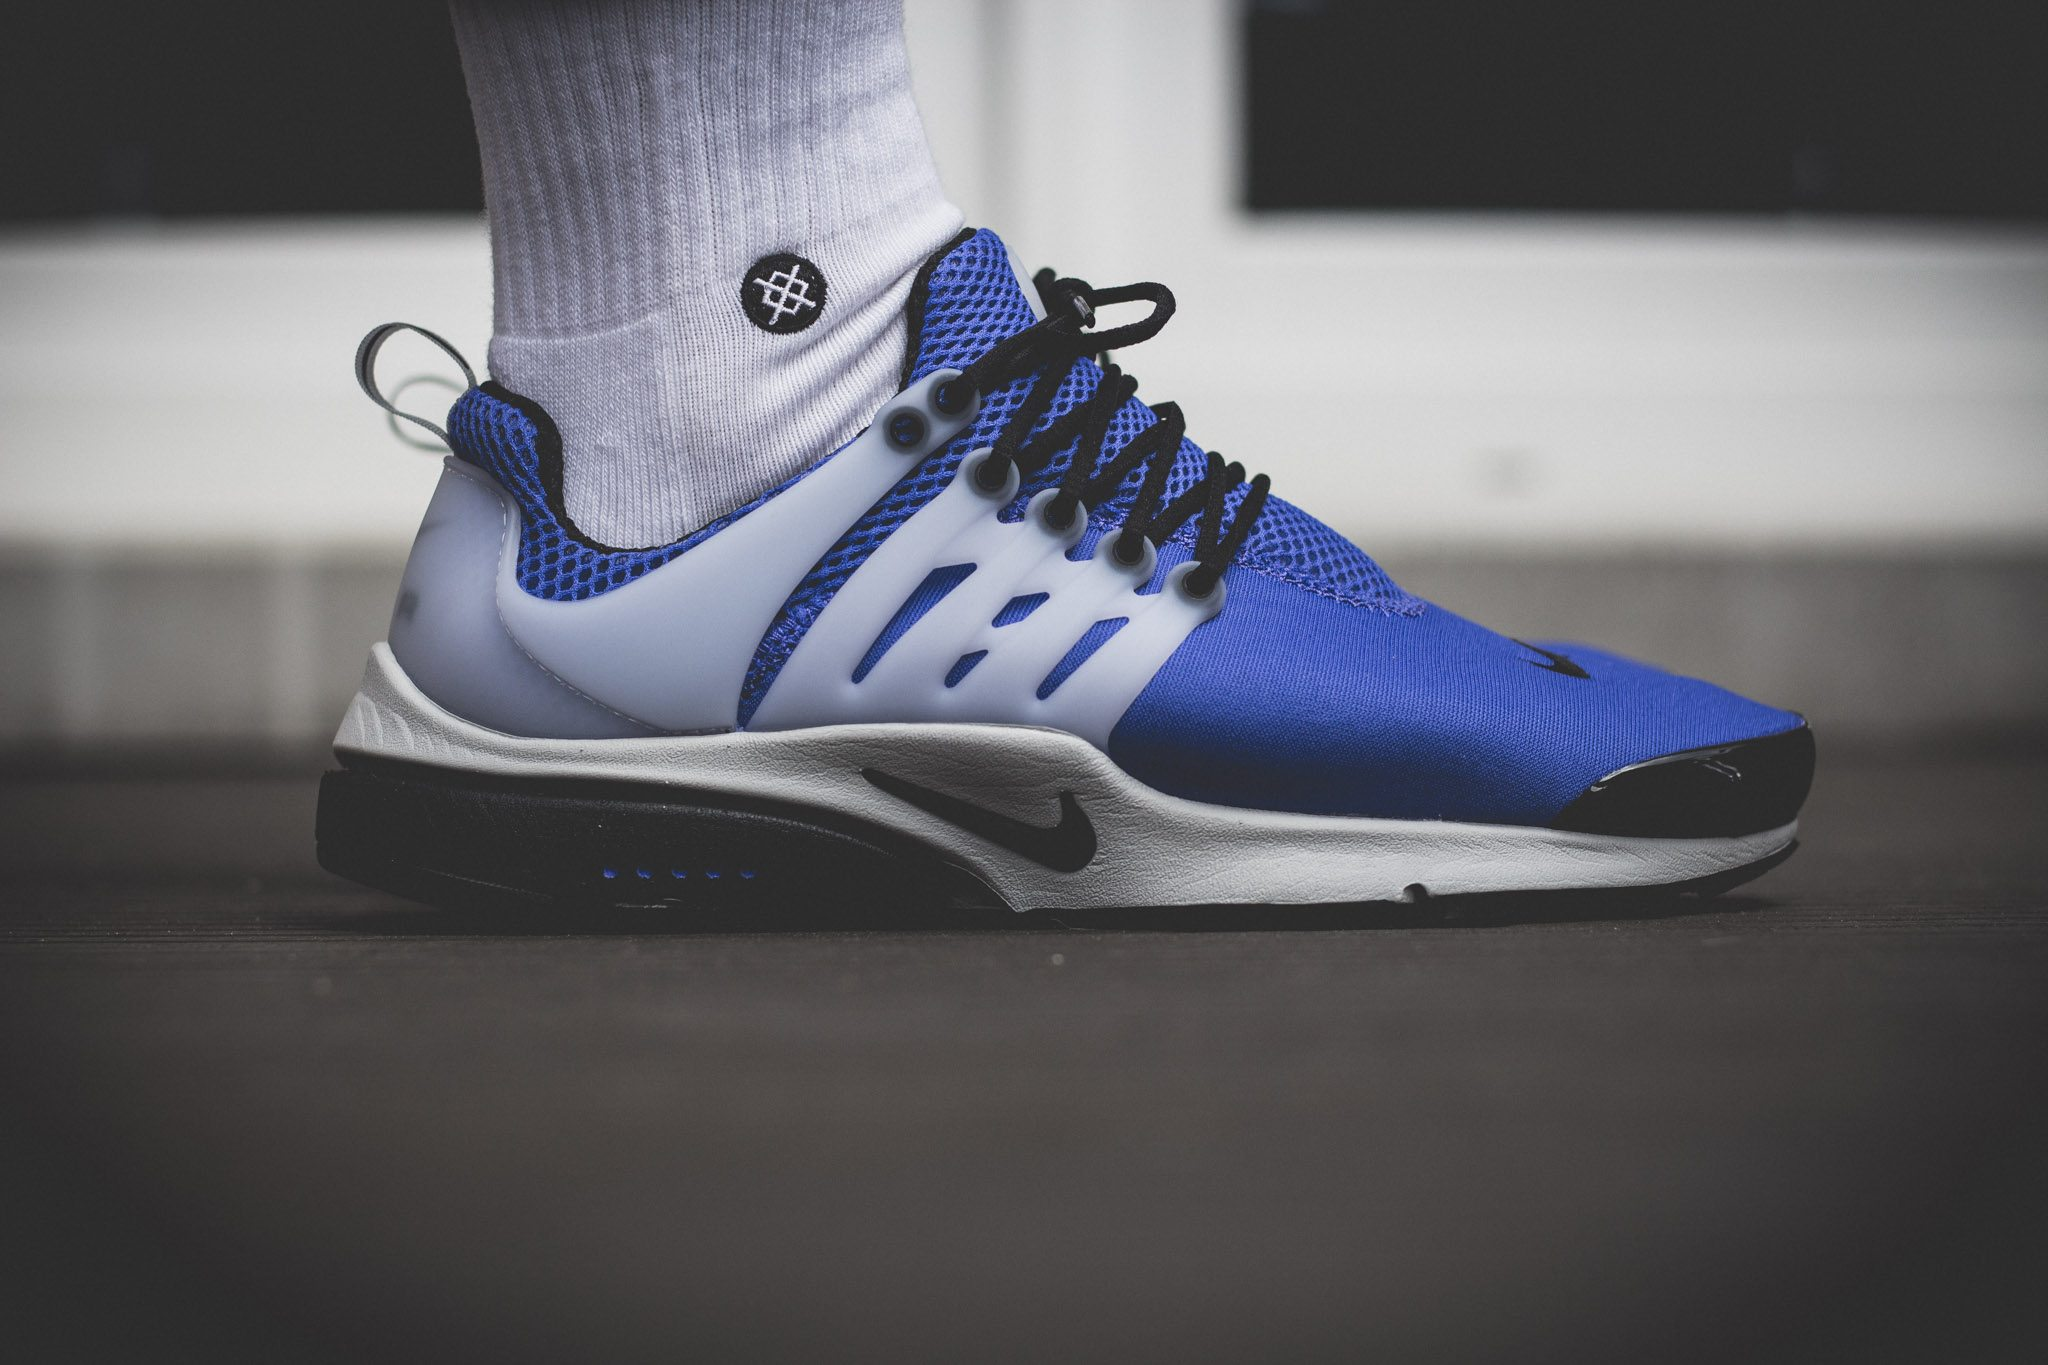 Nike Air Presto Persion Violet On Feet 1